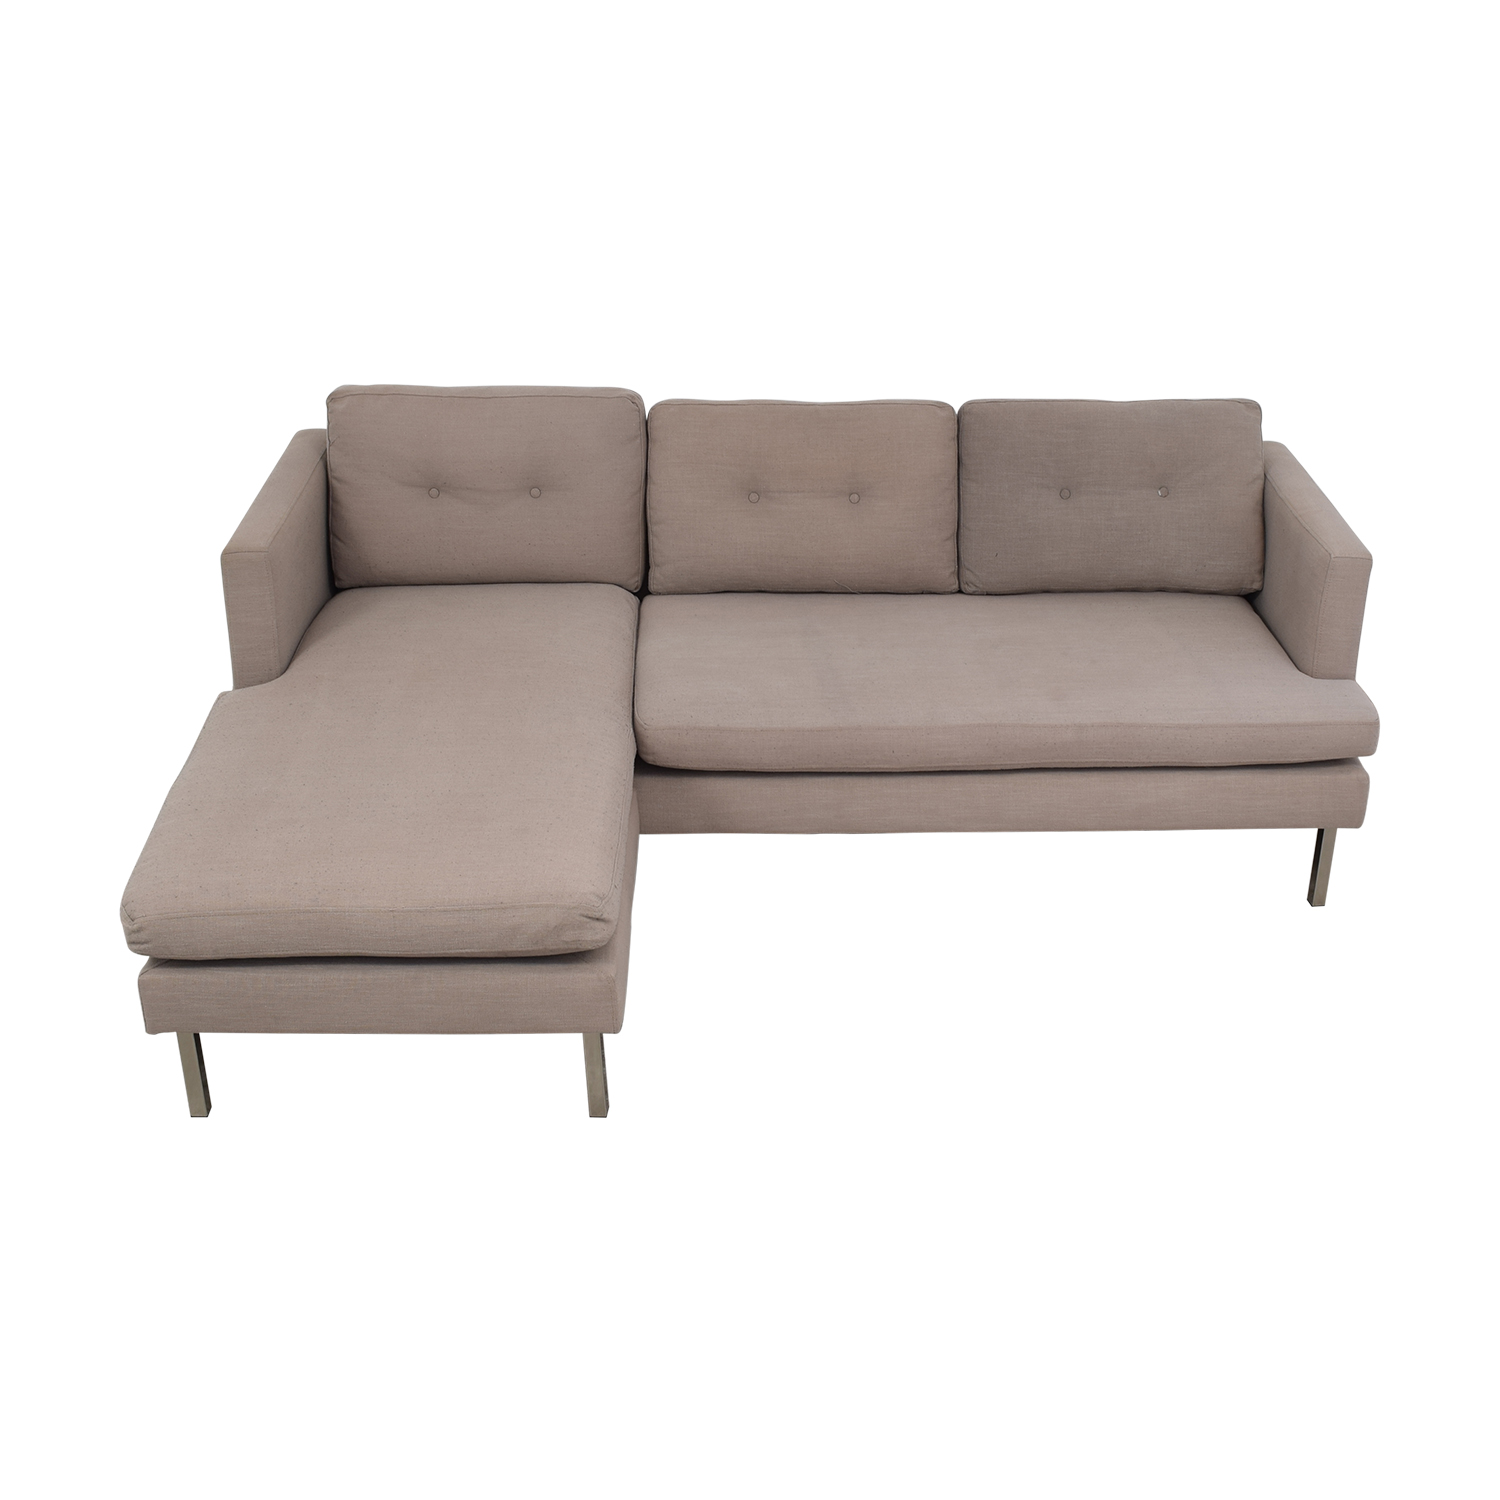 West Elm Marco Two-Piece Sectional Sofa in Chenille Tweed West Elm